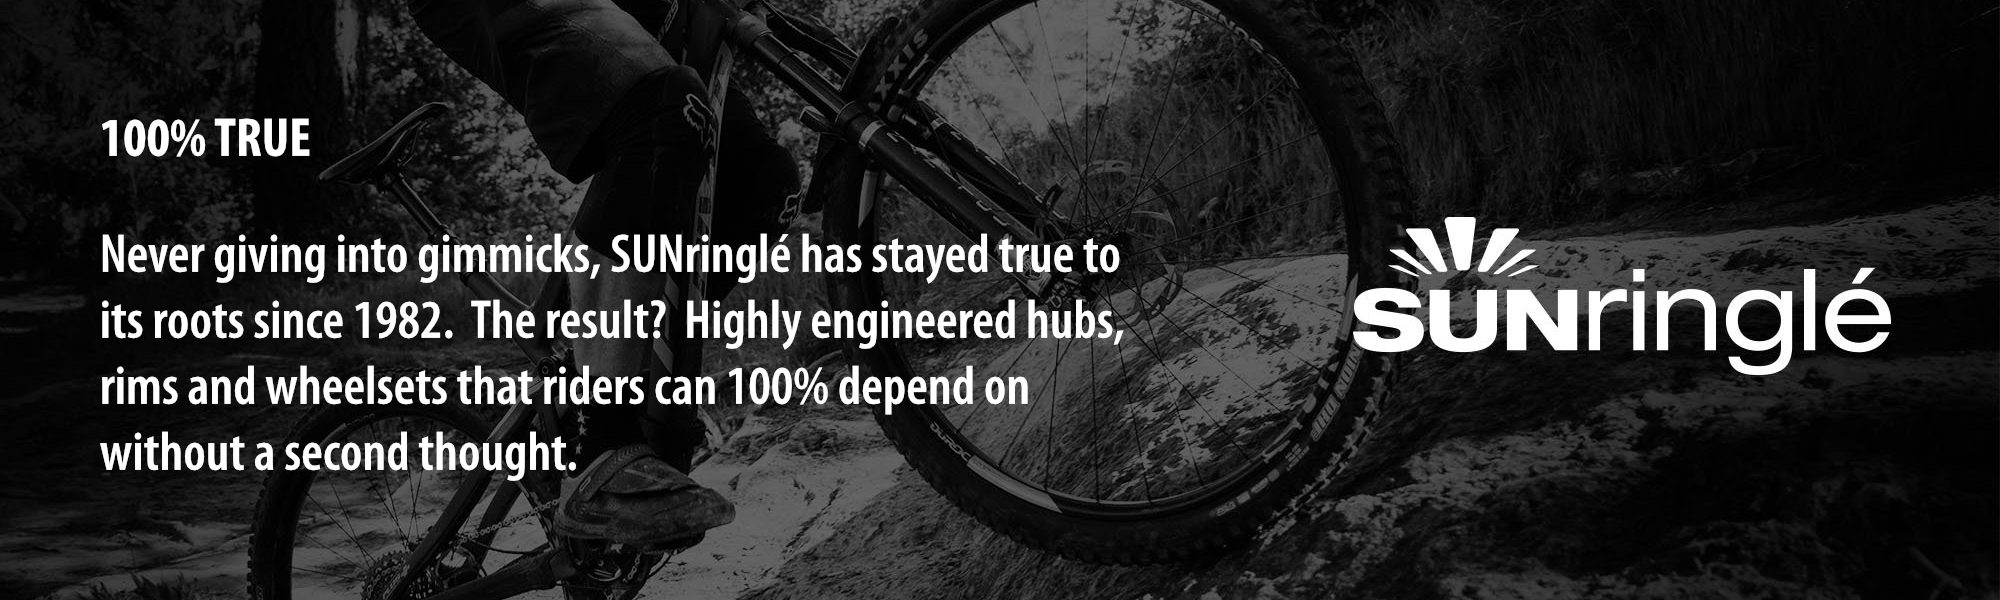 100% TRUE: Never giving into gimmicks, SUNringlé has stayed true to its roots since 1982.  The result?  Highly engineered hubs, rims and wheelsets that riders can 100% depend on without a second thought.